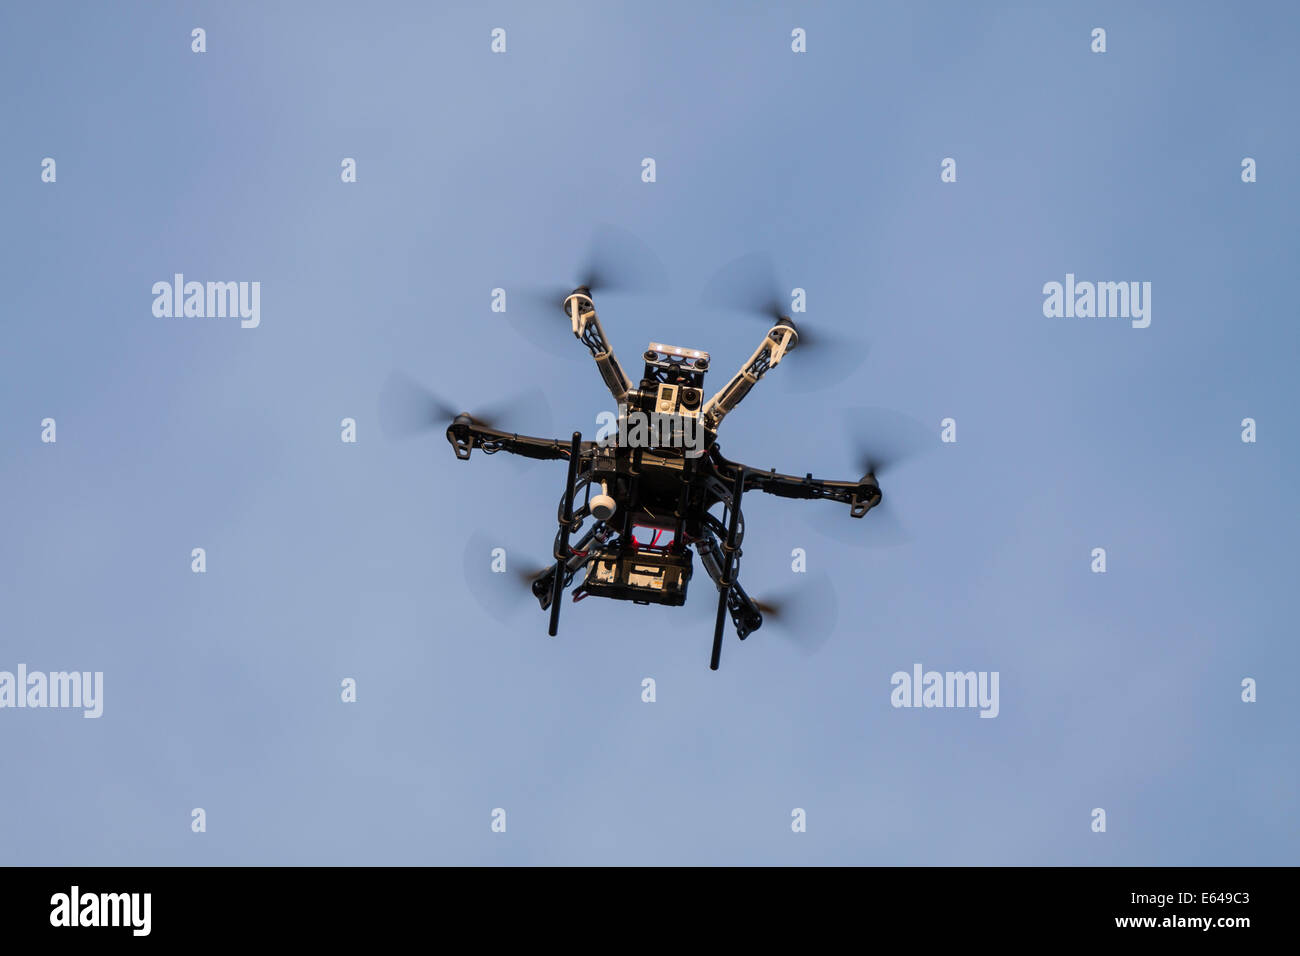 Hexacopter drone with a GoPro Hero camera on board - Stock Image